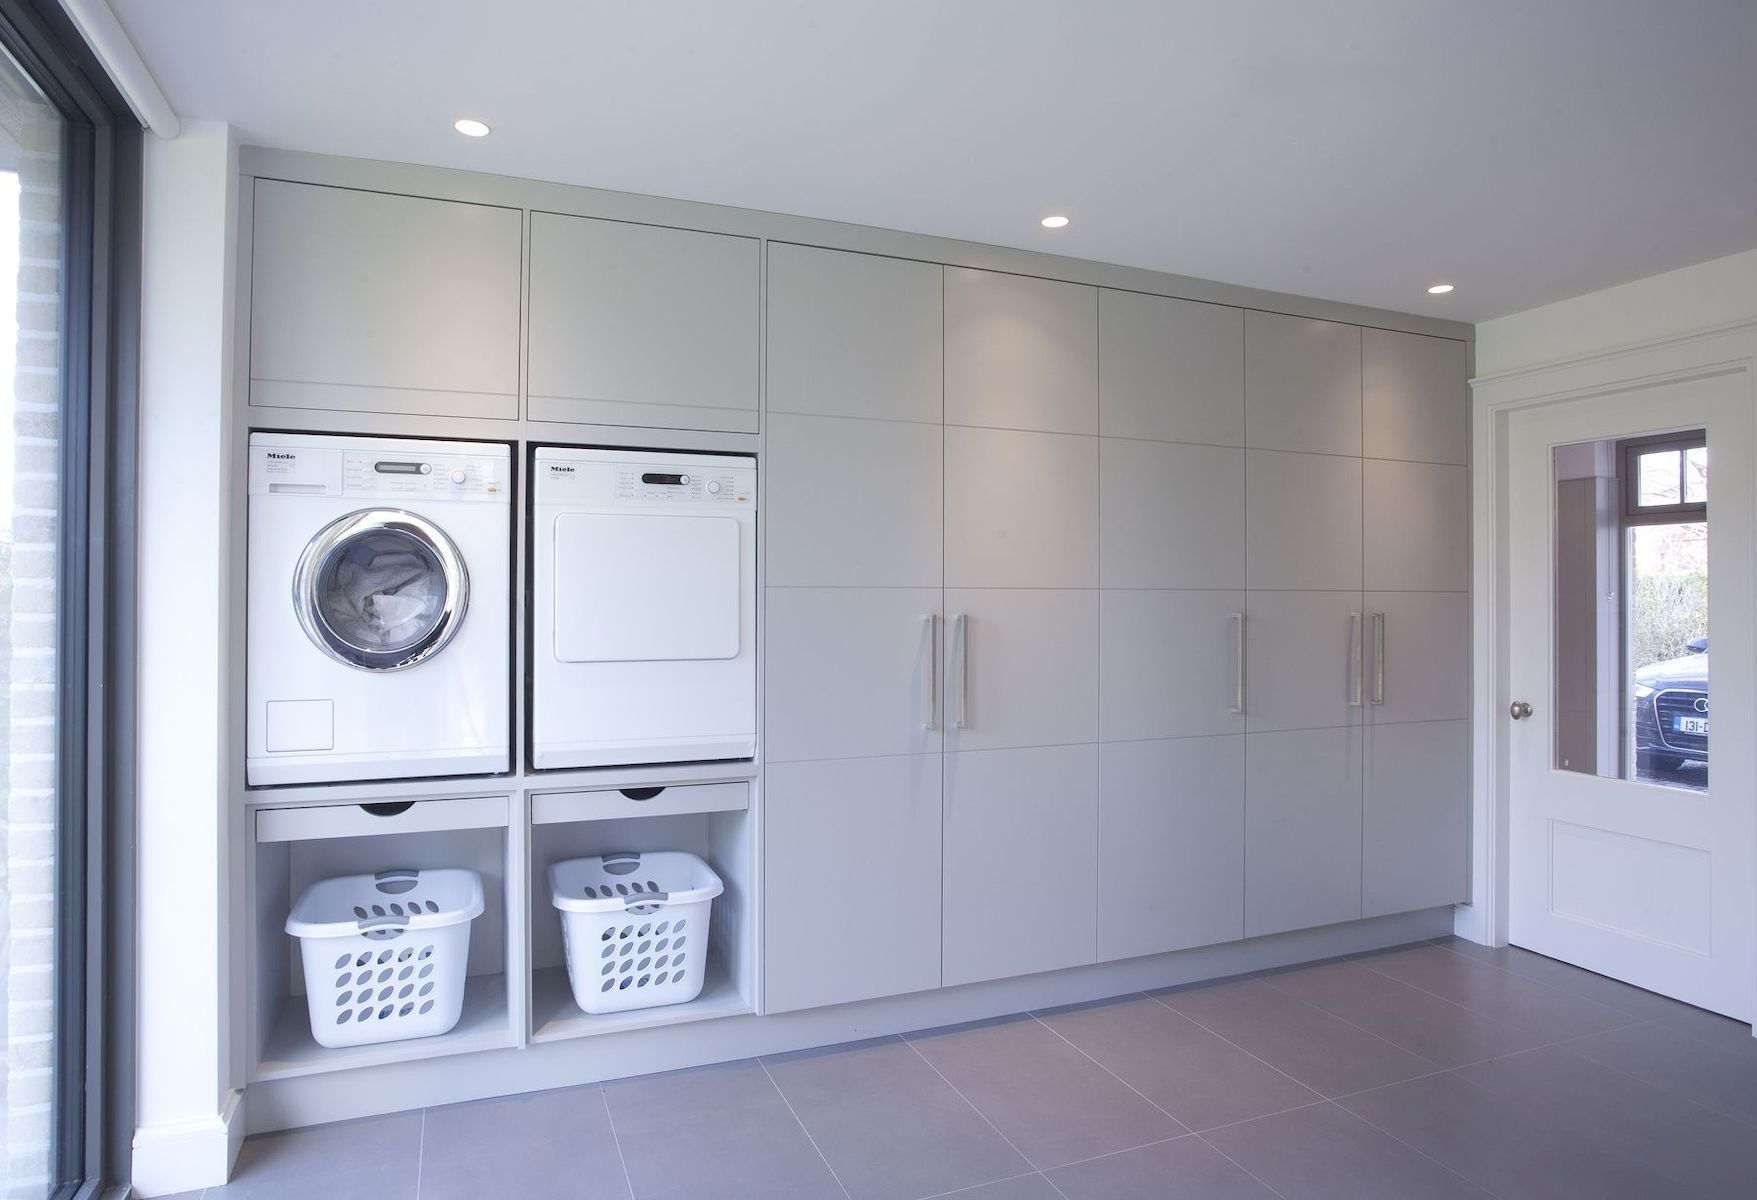 Tricks Building Idea Specifications for a Laundry Room - Yellowraises #laundryrooms